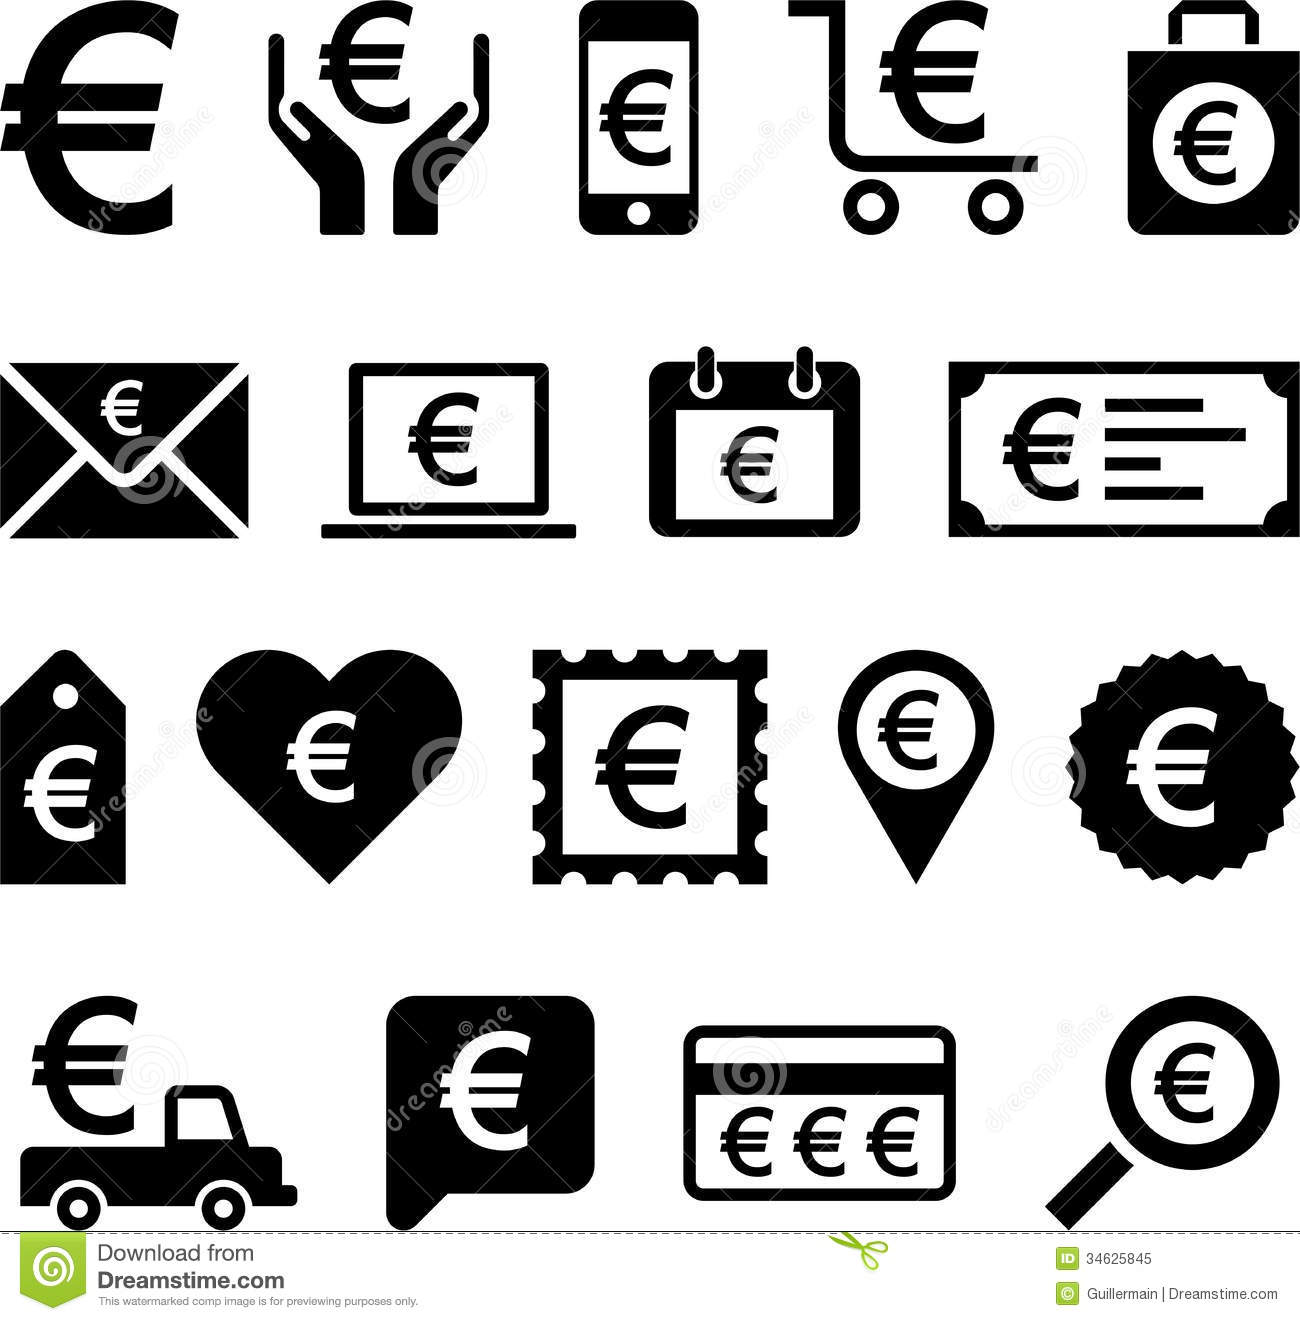 Conceptual Euro icons stock vector. Image of cart, hand